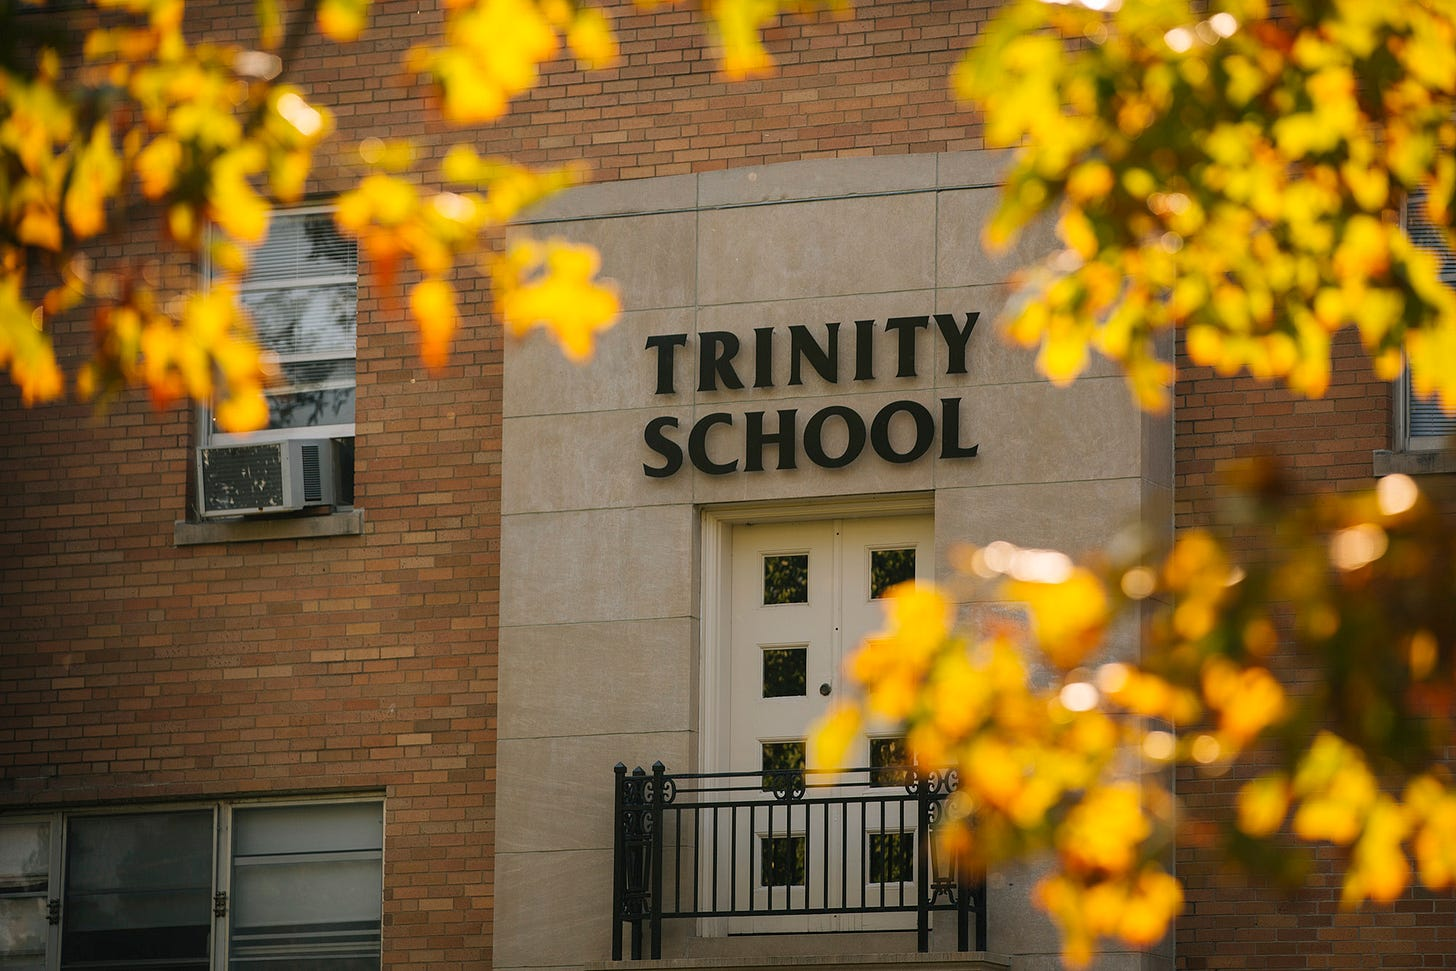 The Trinity School, where Amy Coney Barrett served as a board member on Friday, Sept. 25, 2020 in South Bend, Indiana. | Taylor Glascock for Politico Magazine